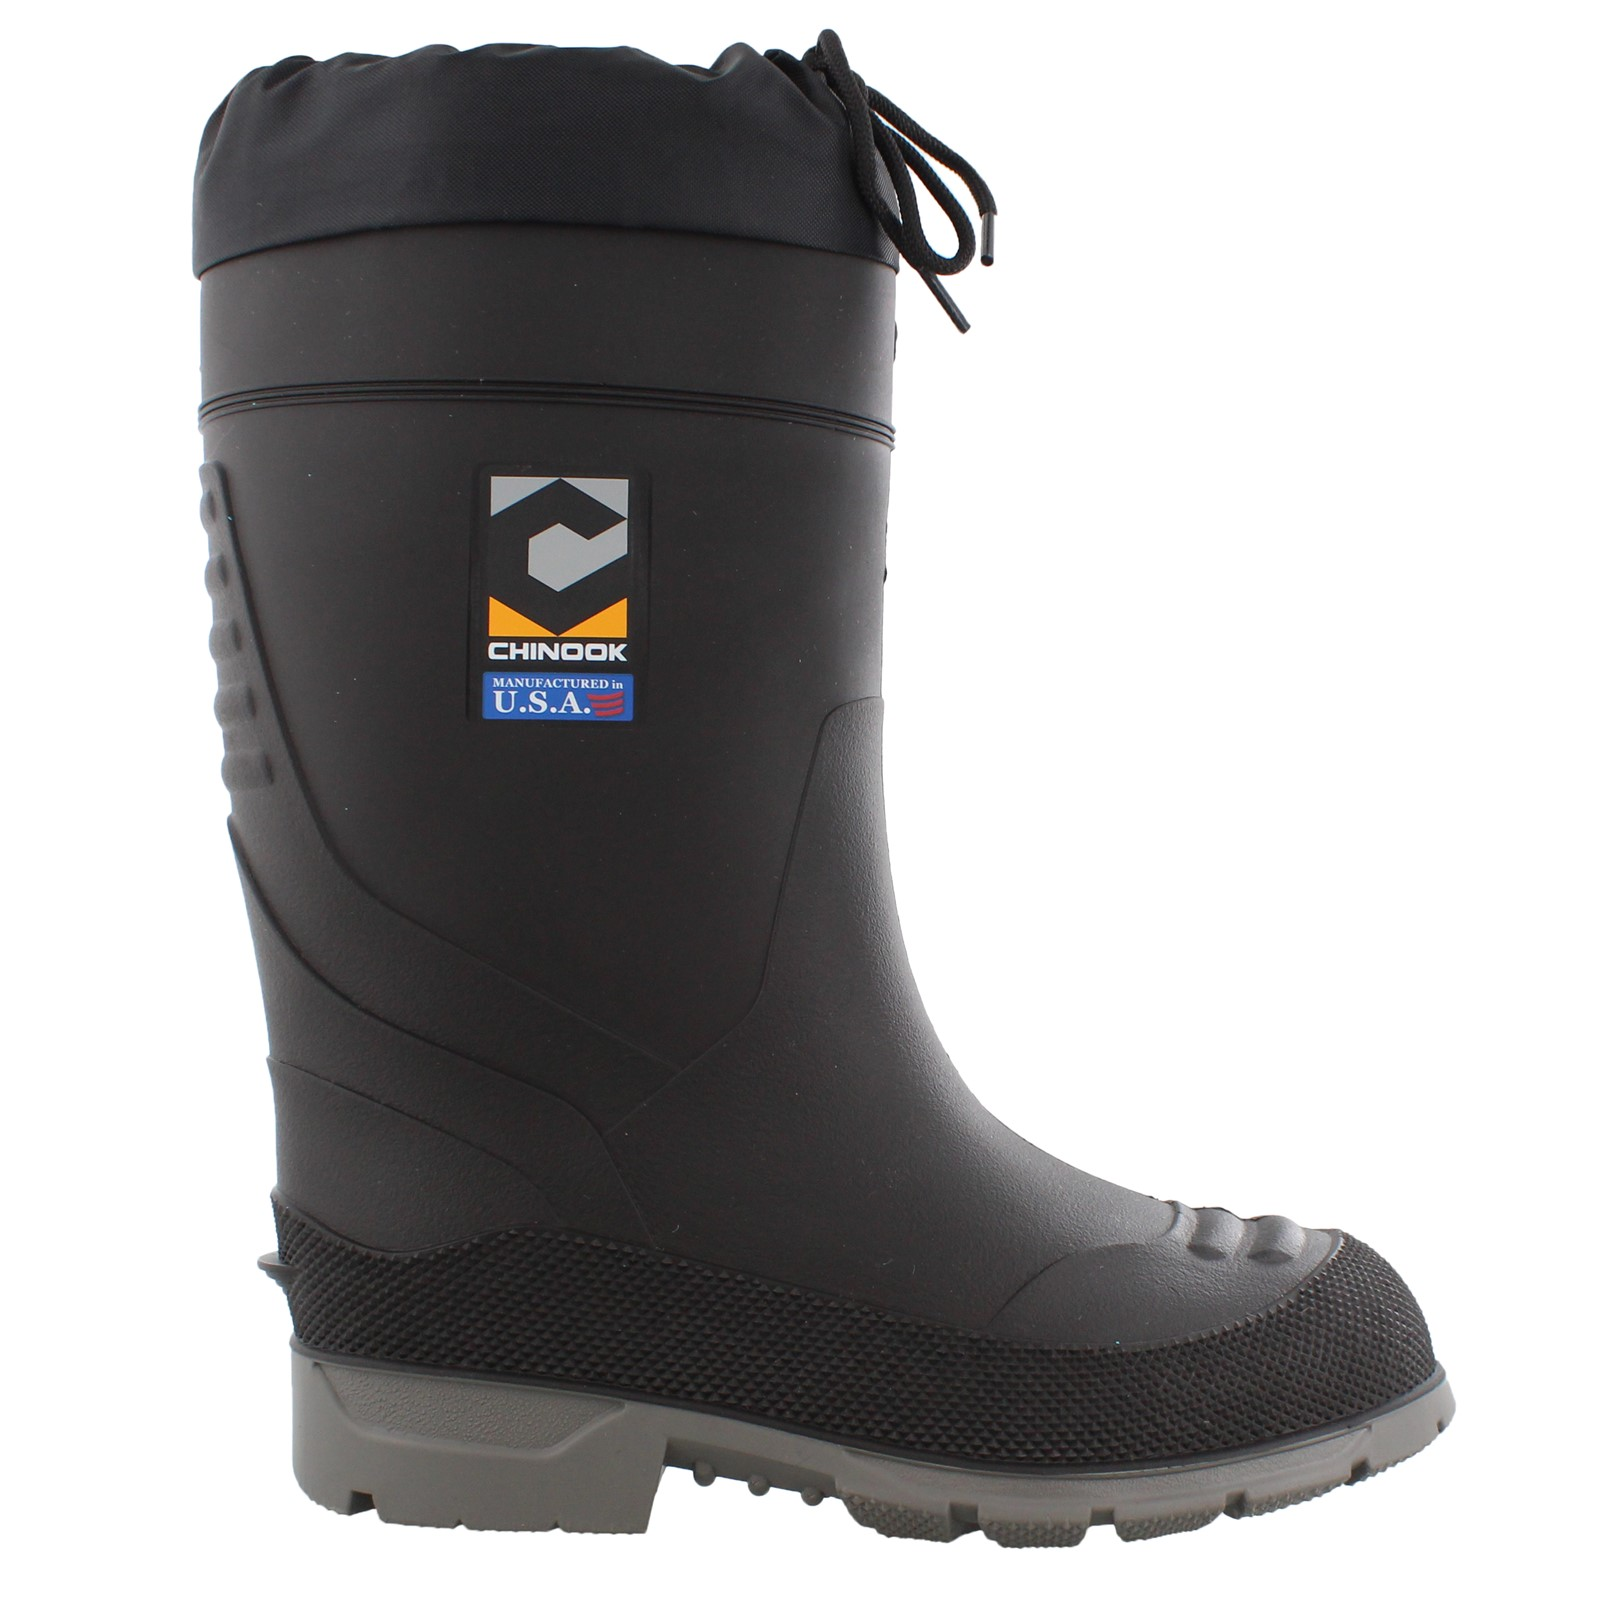 Men's Chinook, Badaxe Waterproof Boots